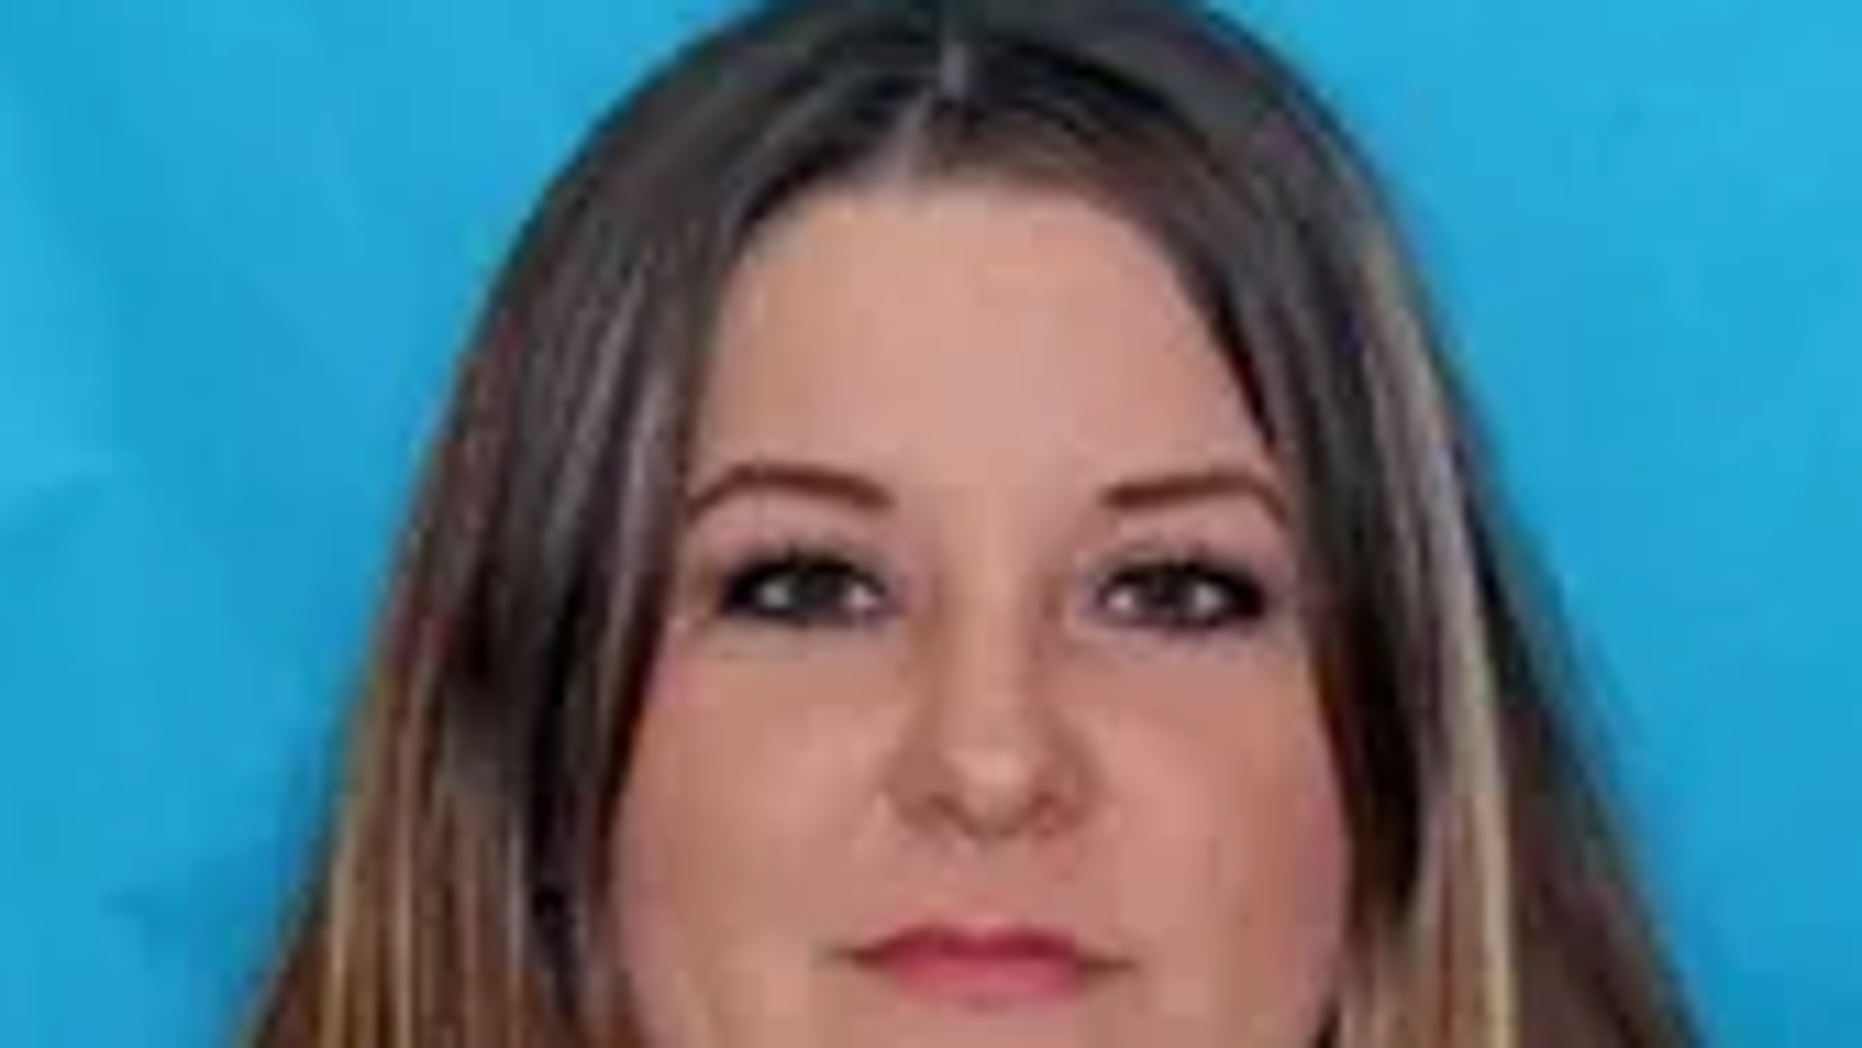 Westlake Legal Group amber-lewis Alabama woman arrested after reporting fake burglary on husband she suspected was cheating: police fox-news/us/crime fox news fnc/us fnc Bradford Betz article adc68979-3e69-548a-8ffa-de0c6f738598